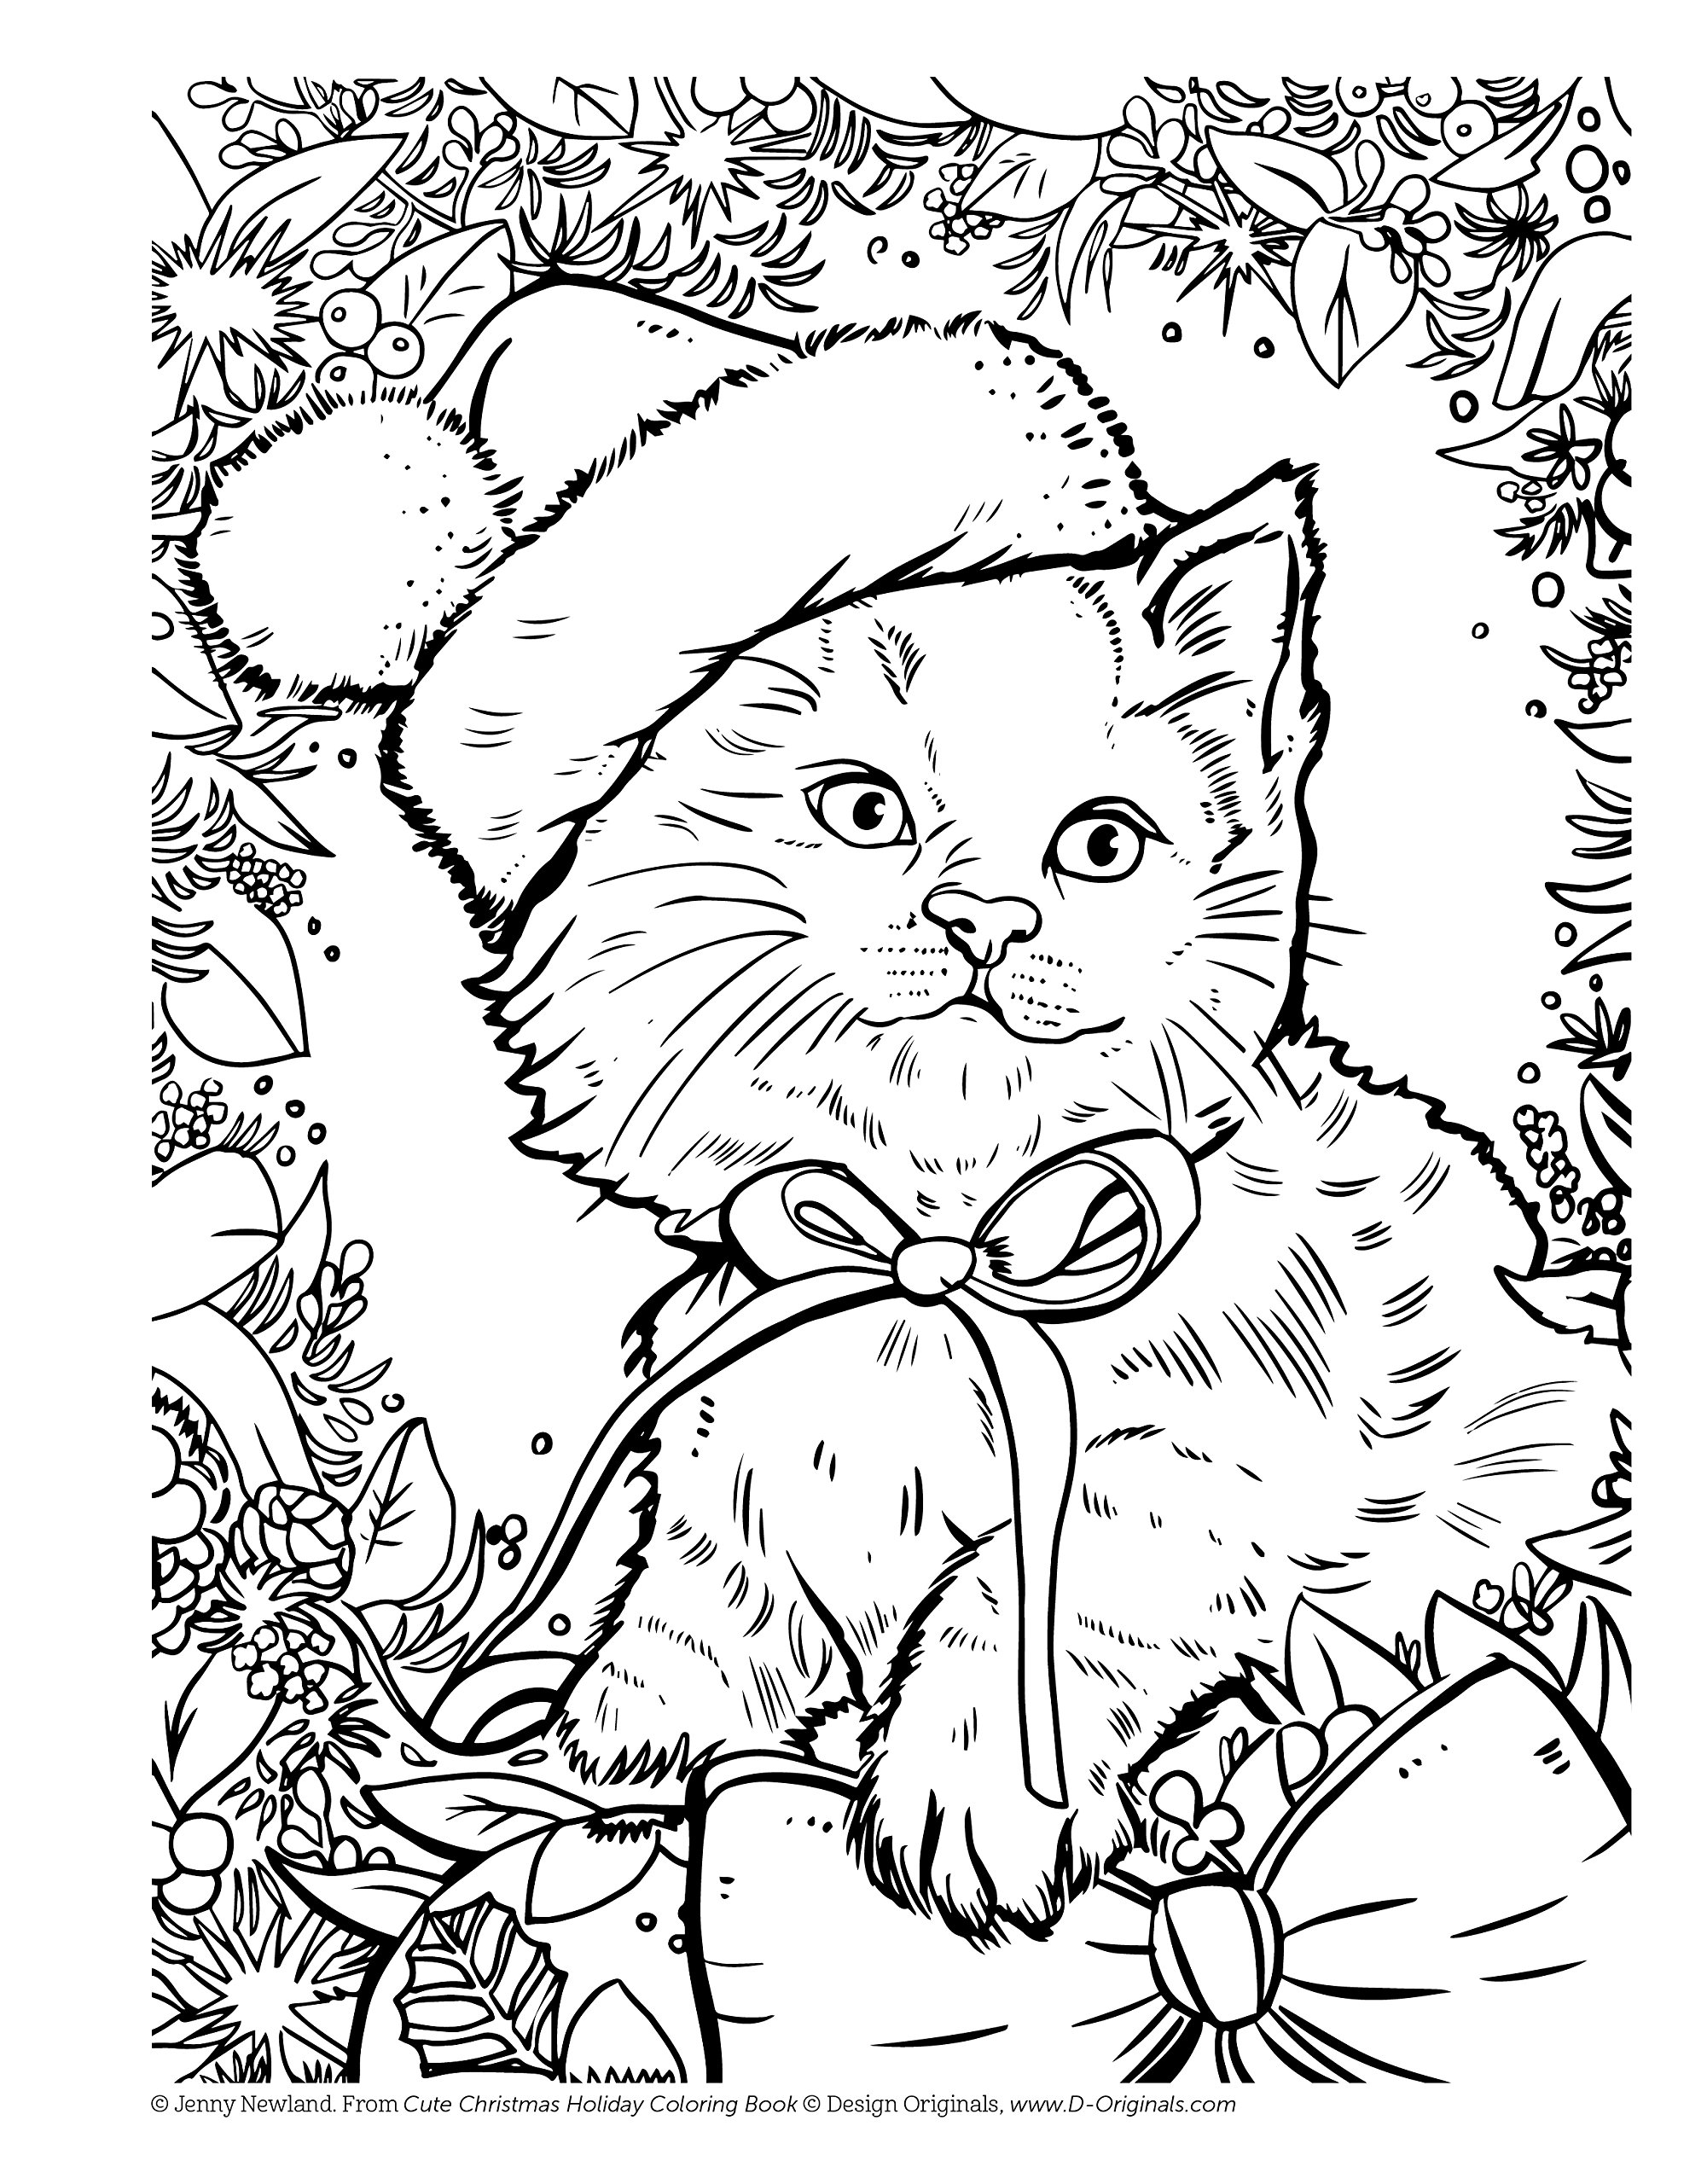 - Cute Christmas Holiday Coloring Book: Amazon.de: Jenny Newland